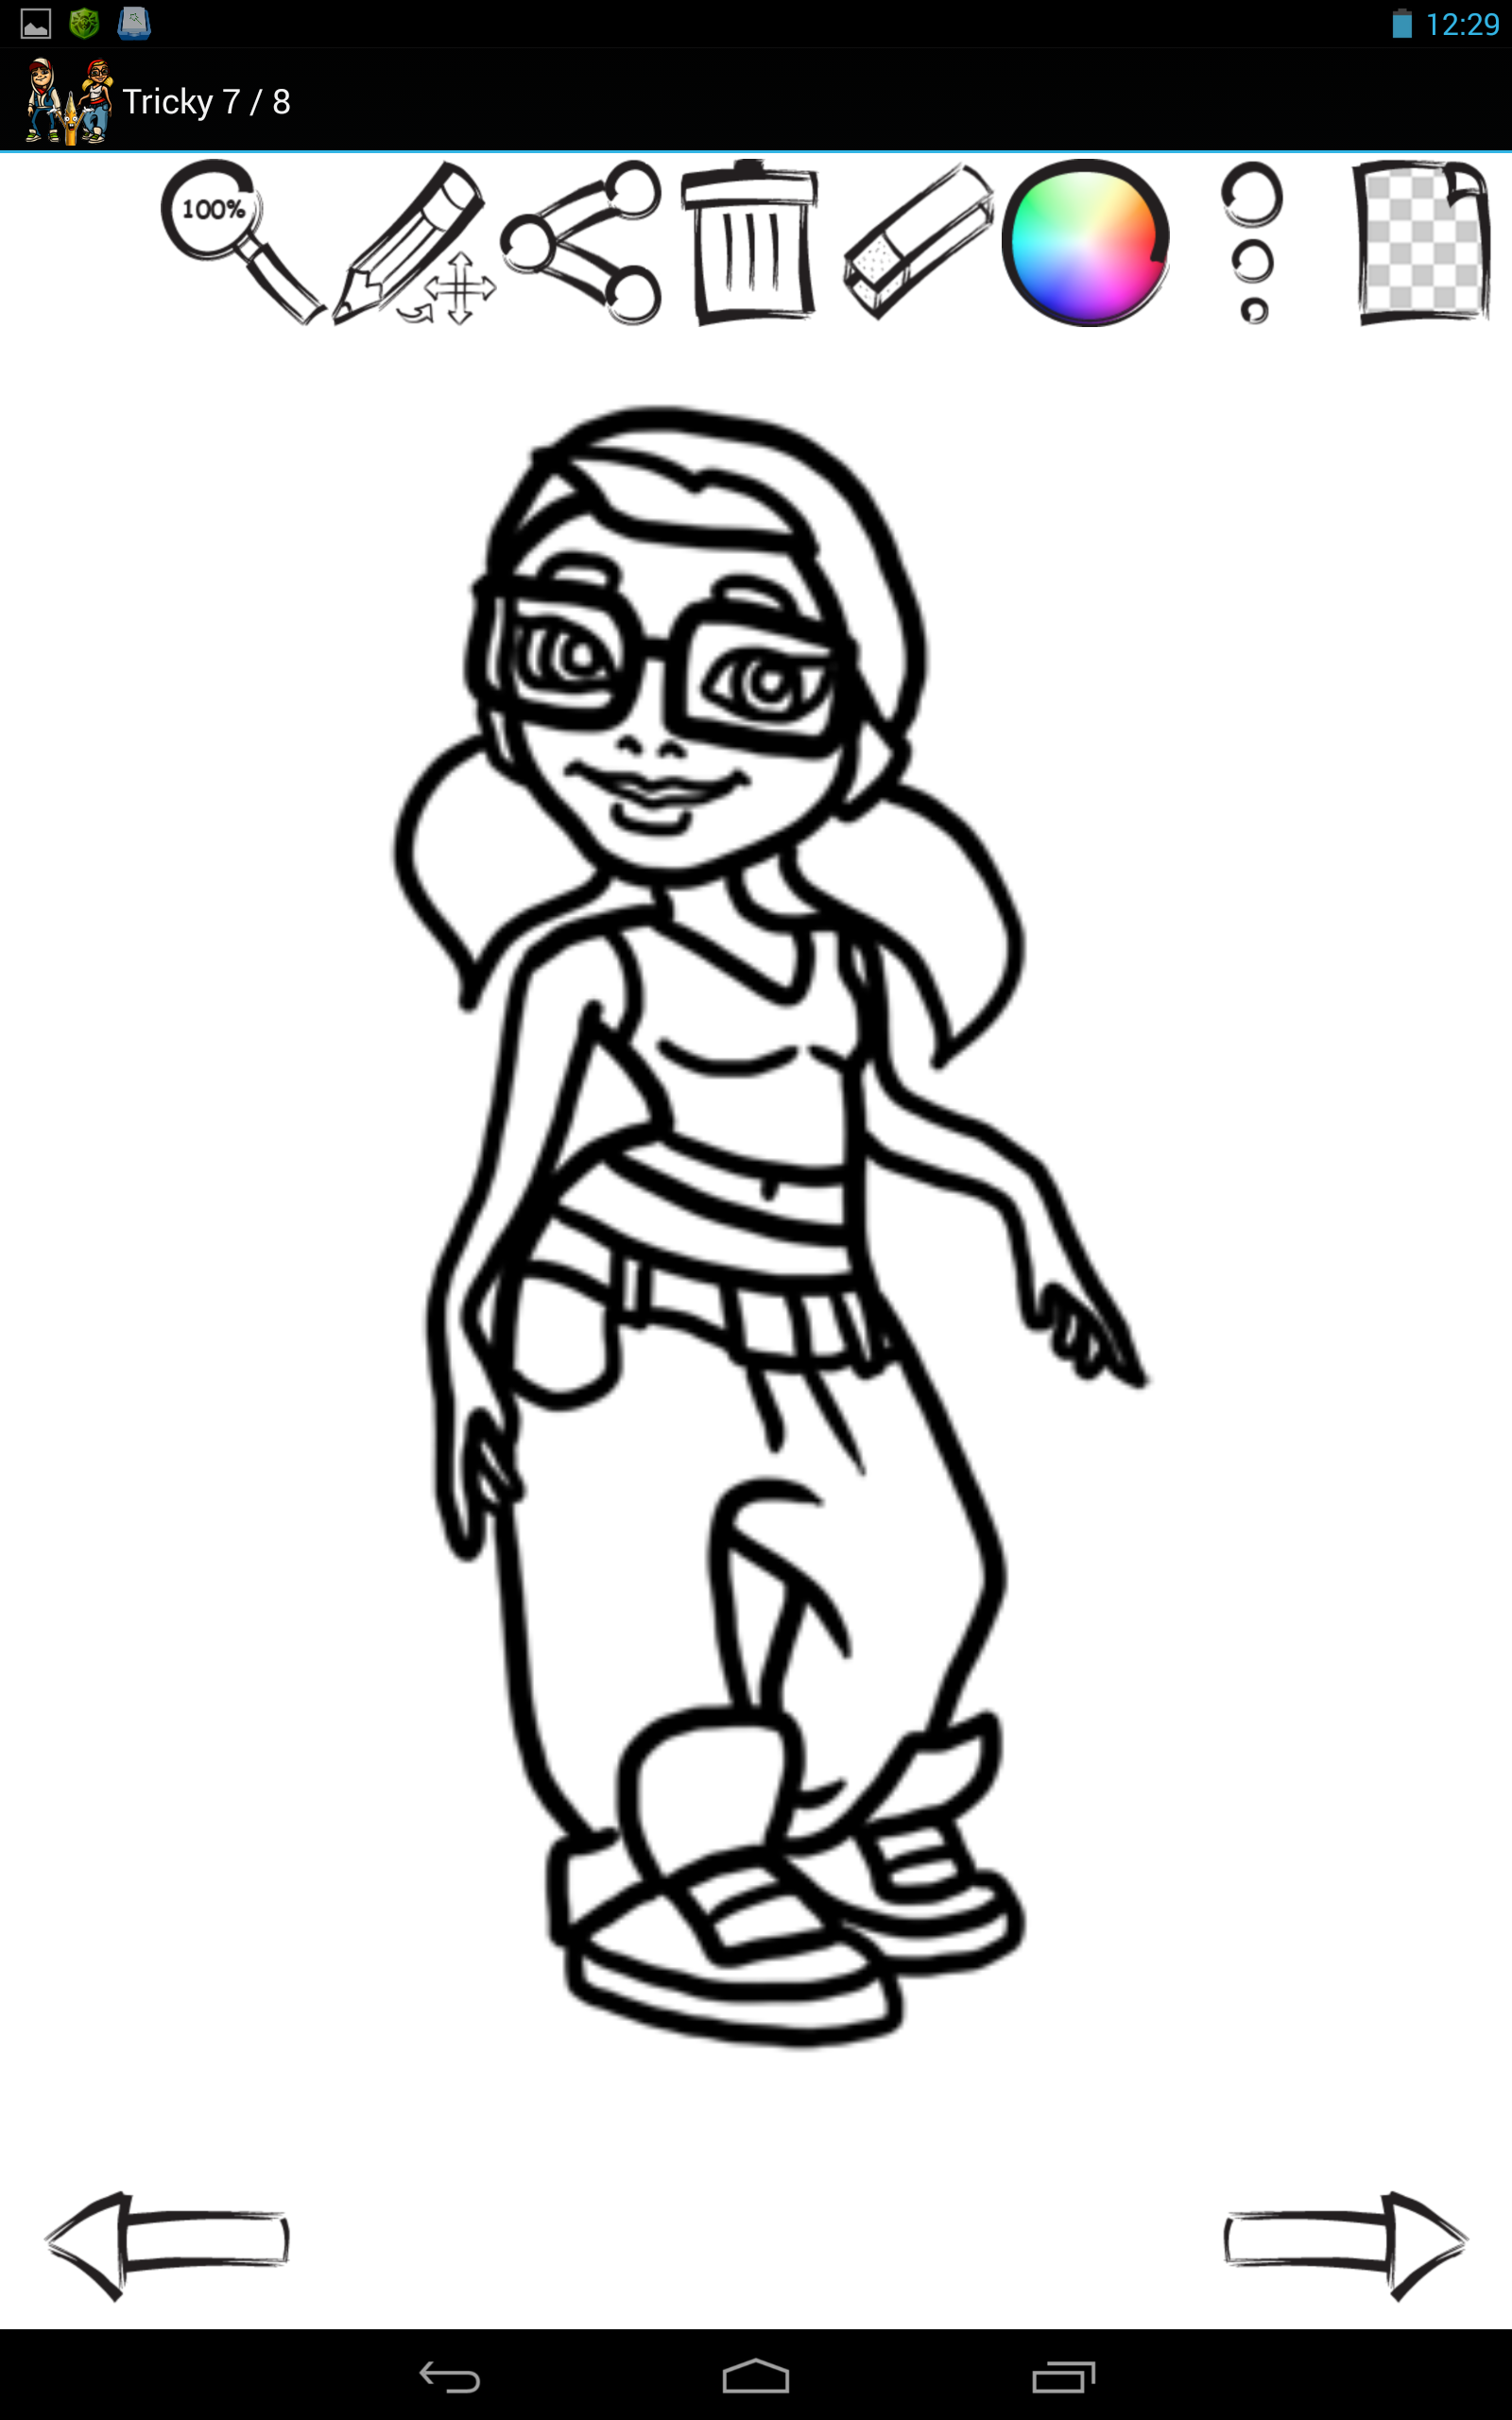 Amazon.com: How to Draw: Subway Surfers Characters: Appstore for